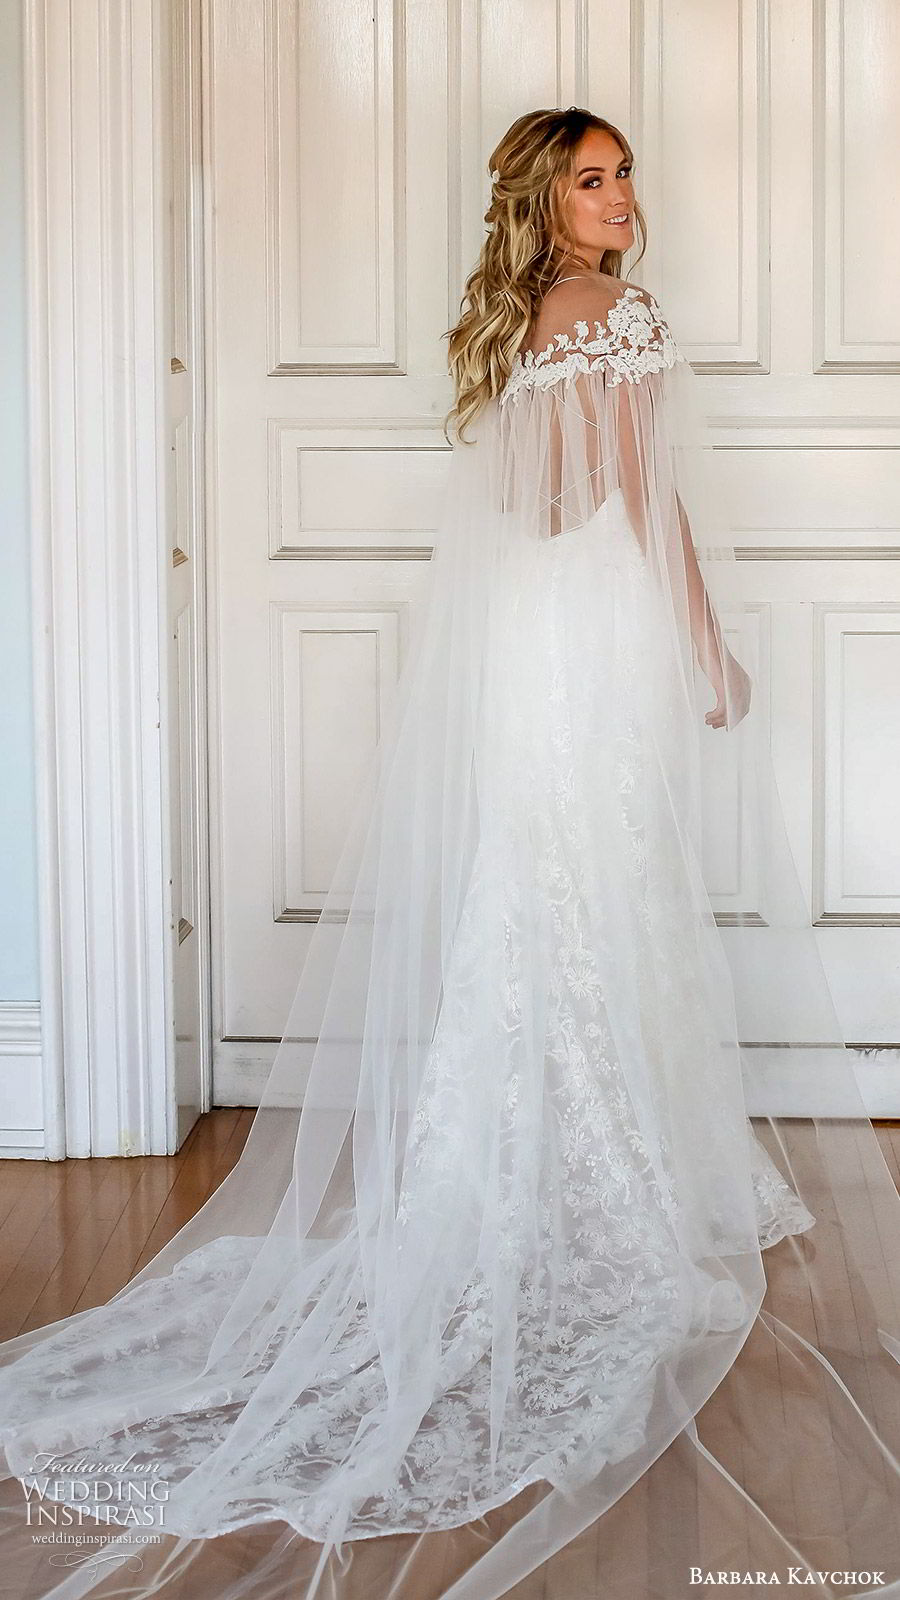 barbara kavchok fall 2019 bridal sleeveless thin straps sweetheart neckline lace sheath wedding dress (9) bv sheer cape low back boho elegant romantic